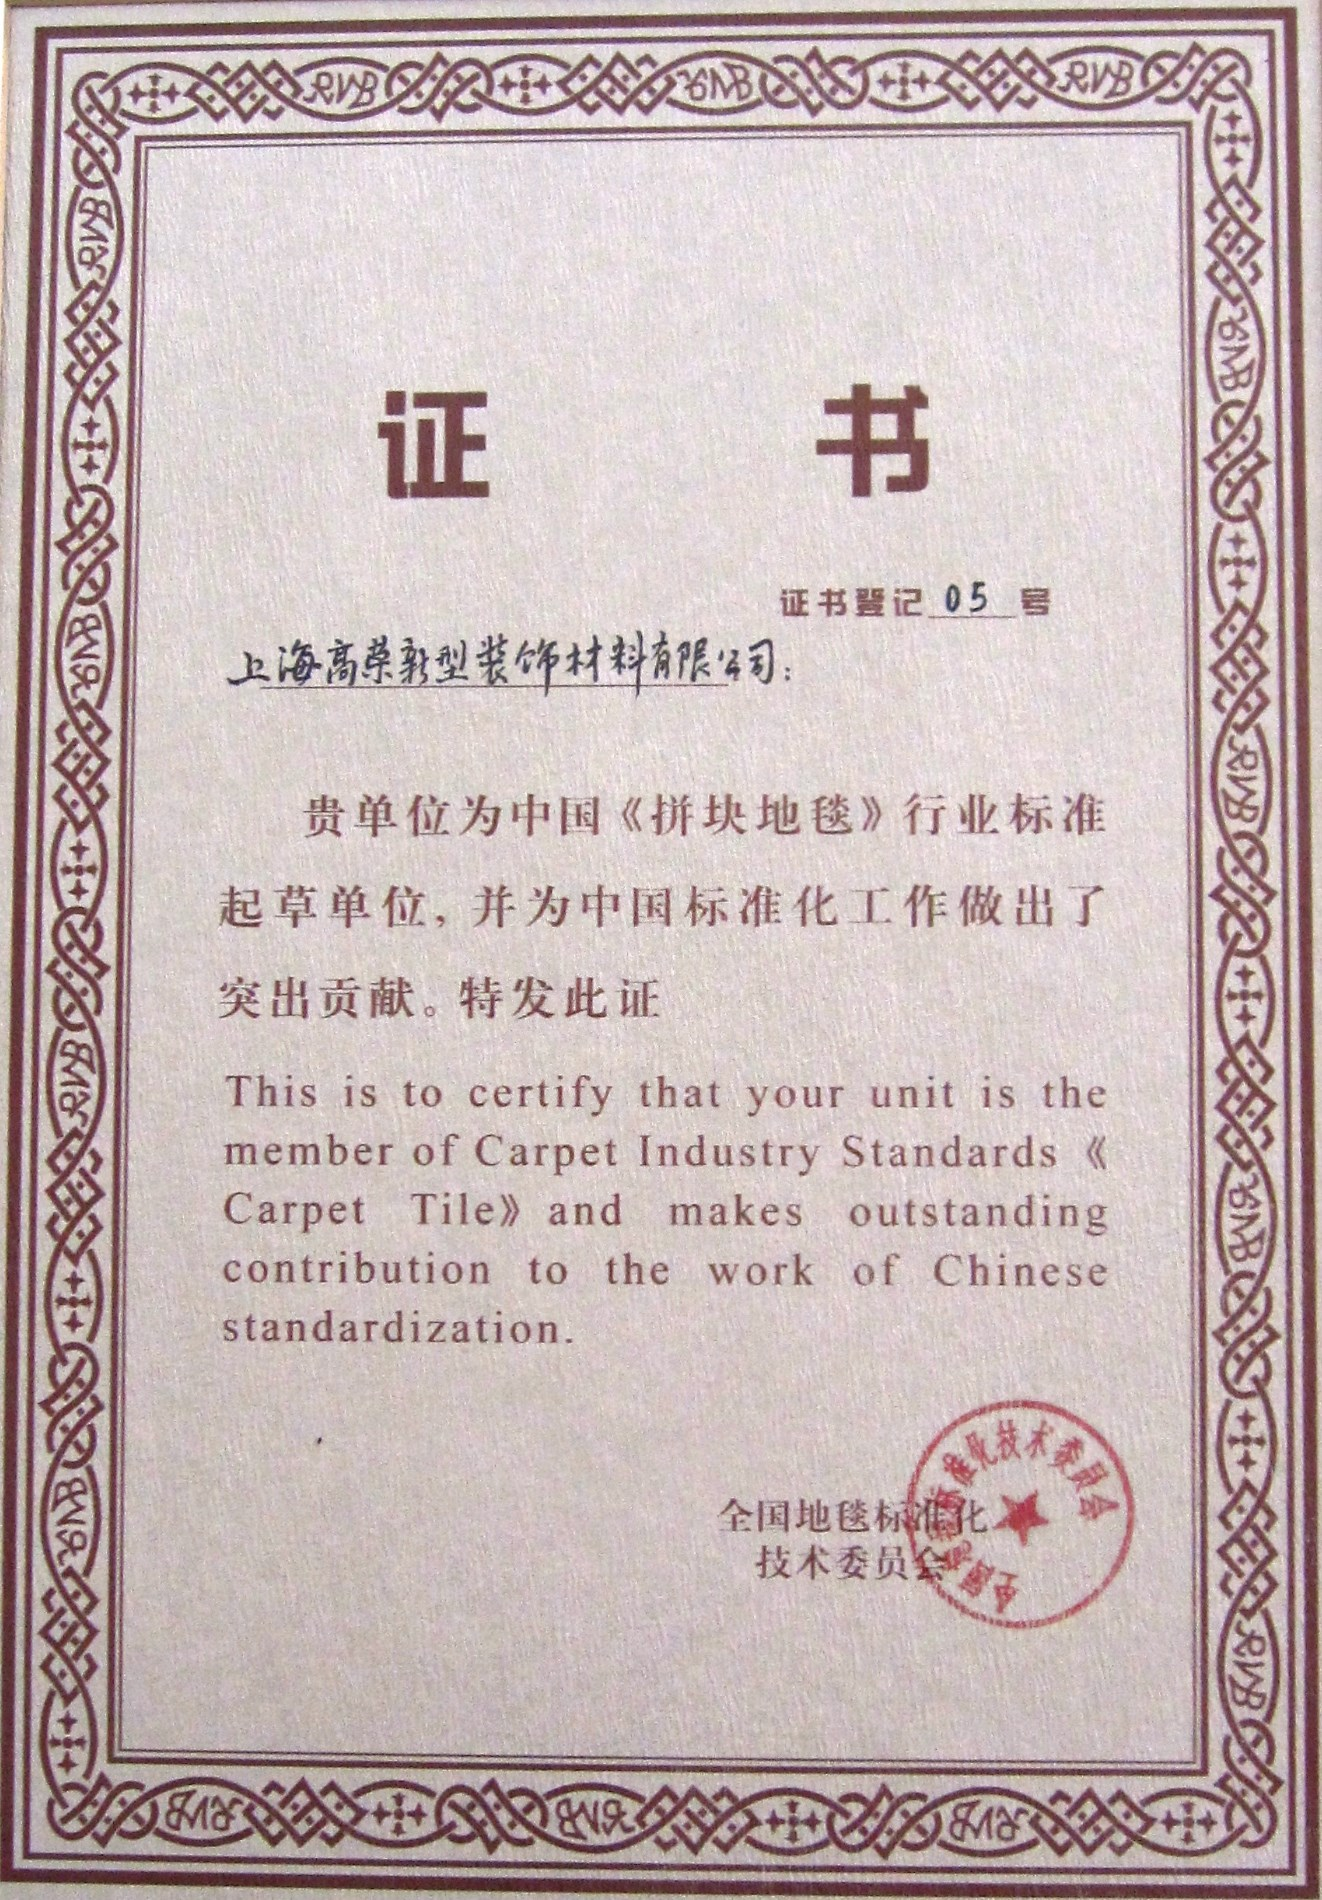 The member of China Carpet Industry Standards